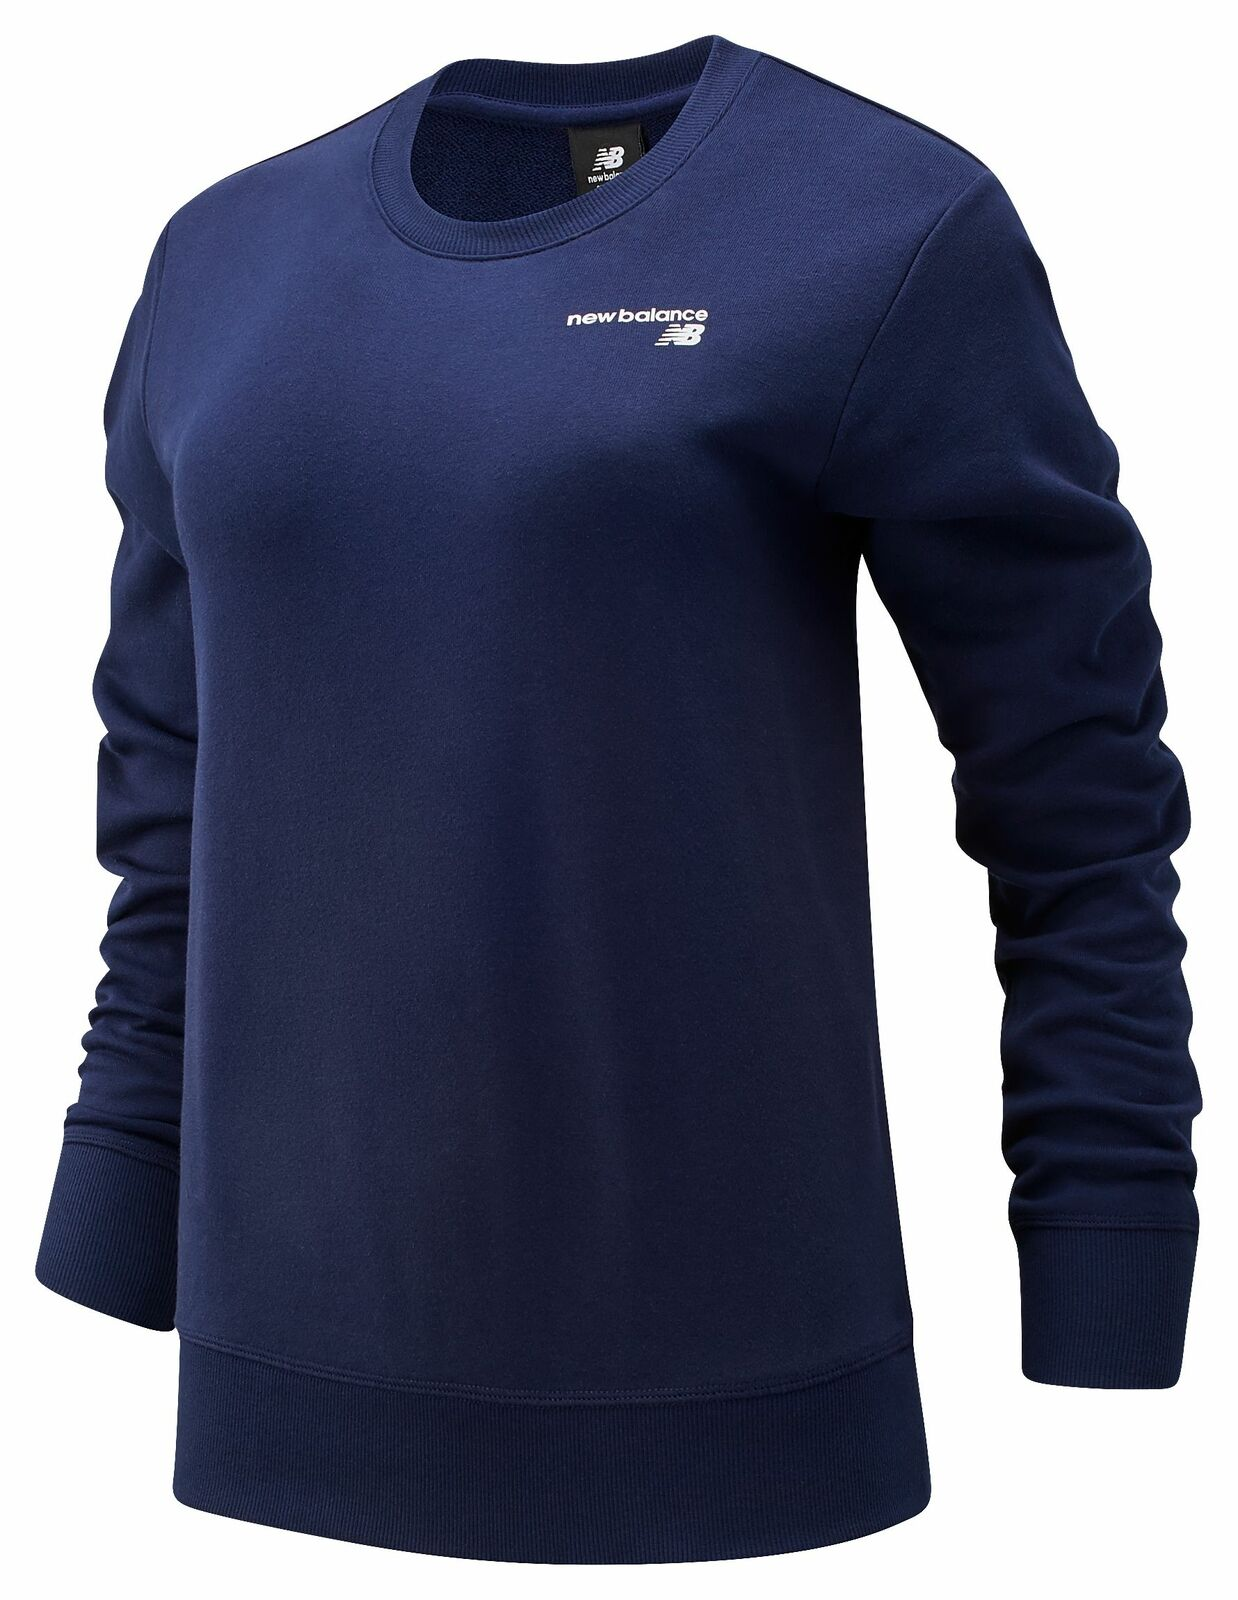 New Balance Women's NB Classic Core French Terry Crew Navy